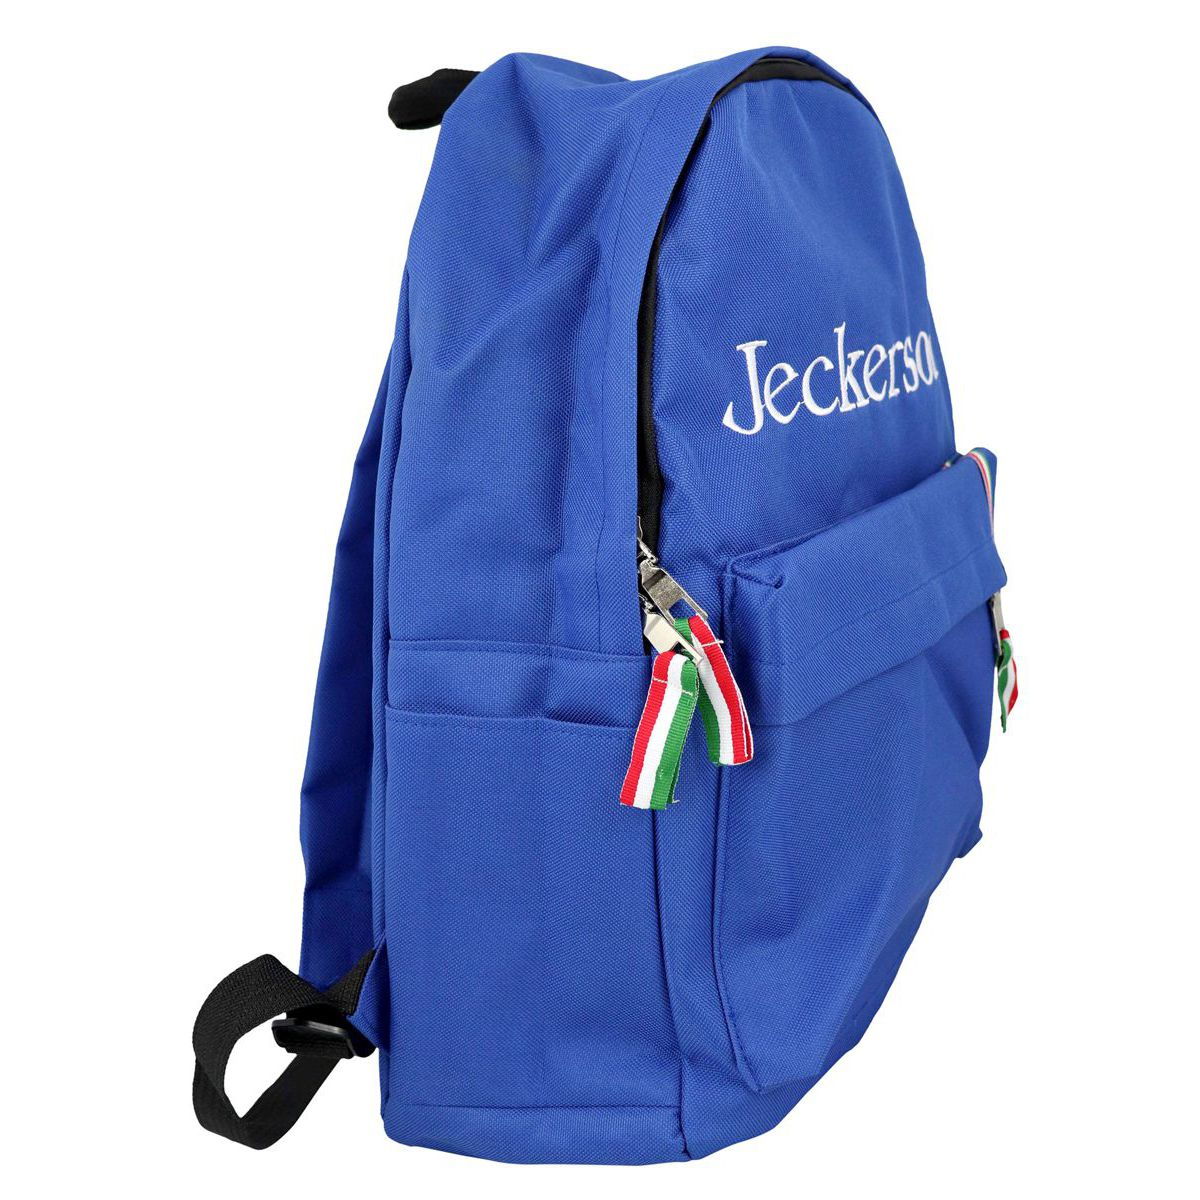 Backpack with front logo and Italian flag Bluette Jeckerson